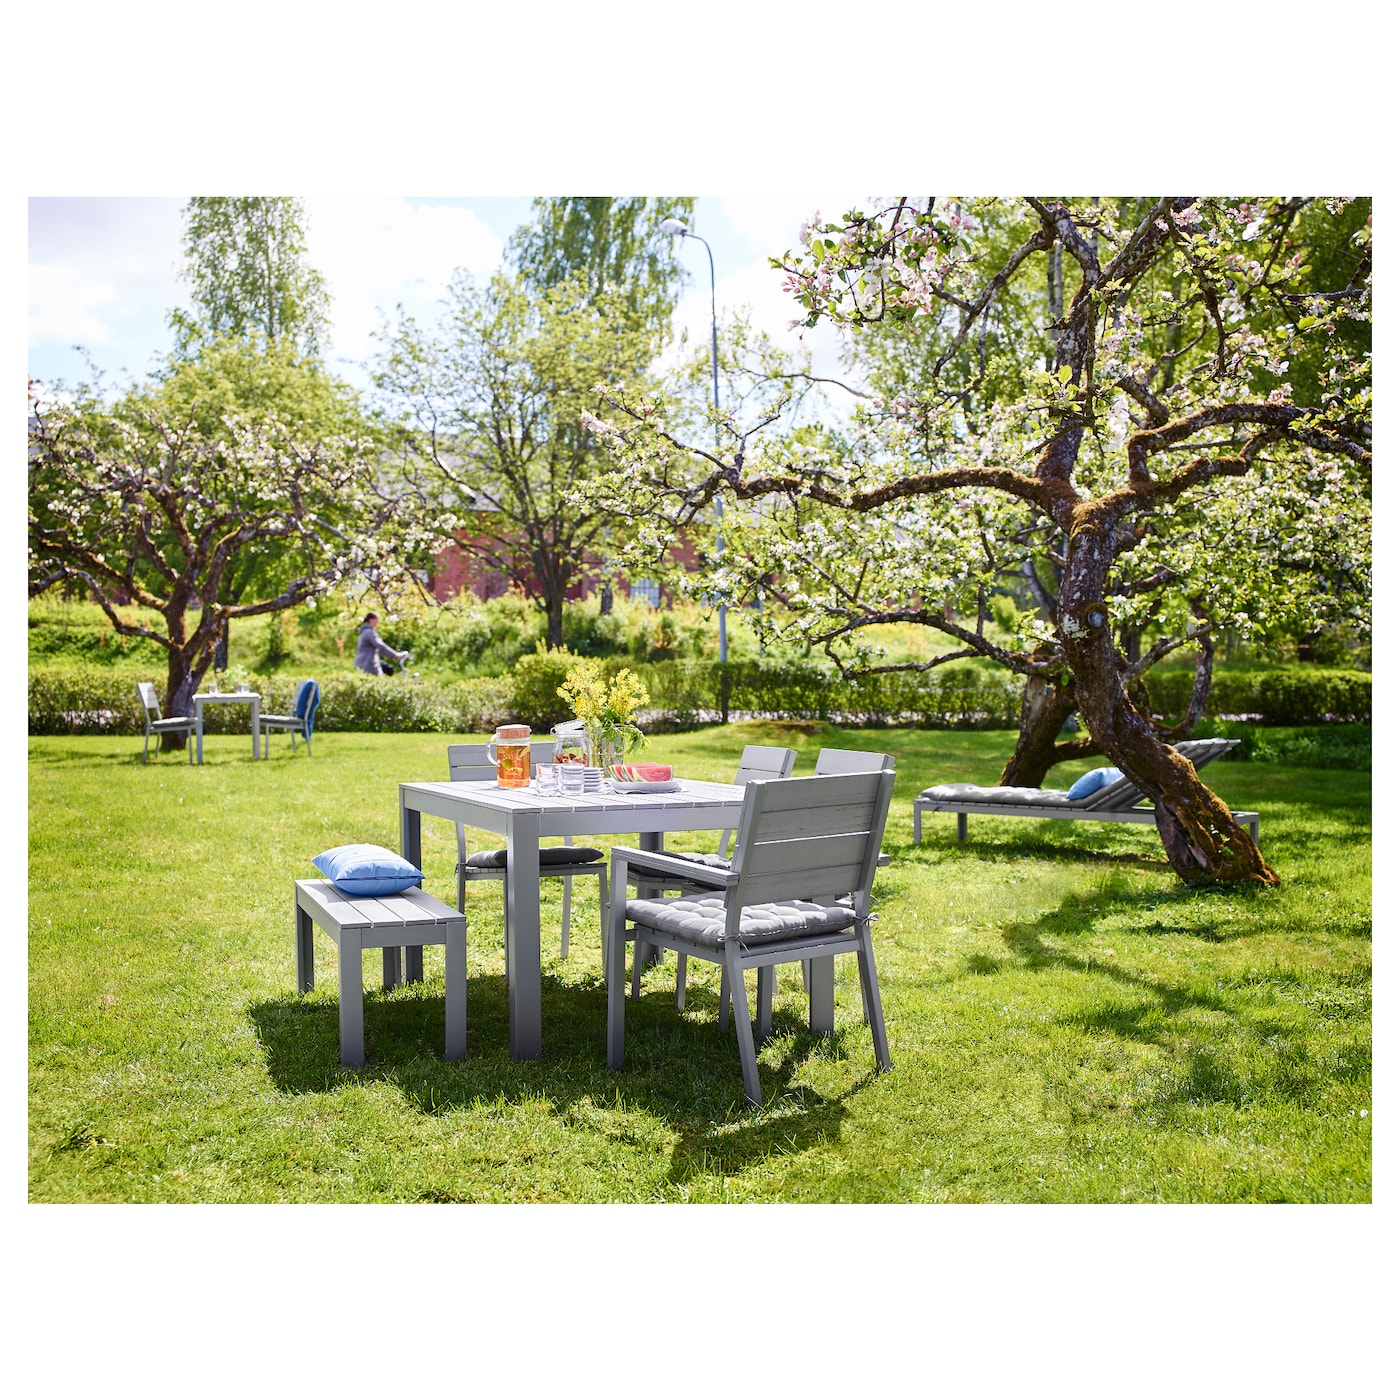 Ikea falster garden furniture design youtube - Ikea Falster Bench Outdoor The Polystyrene Slats Are Weather Resistant And Easy To Care